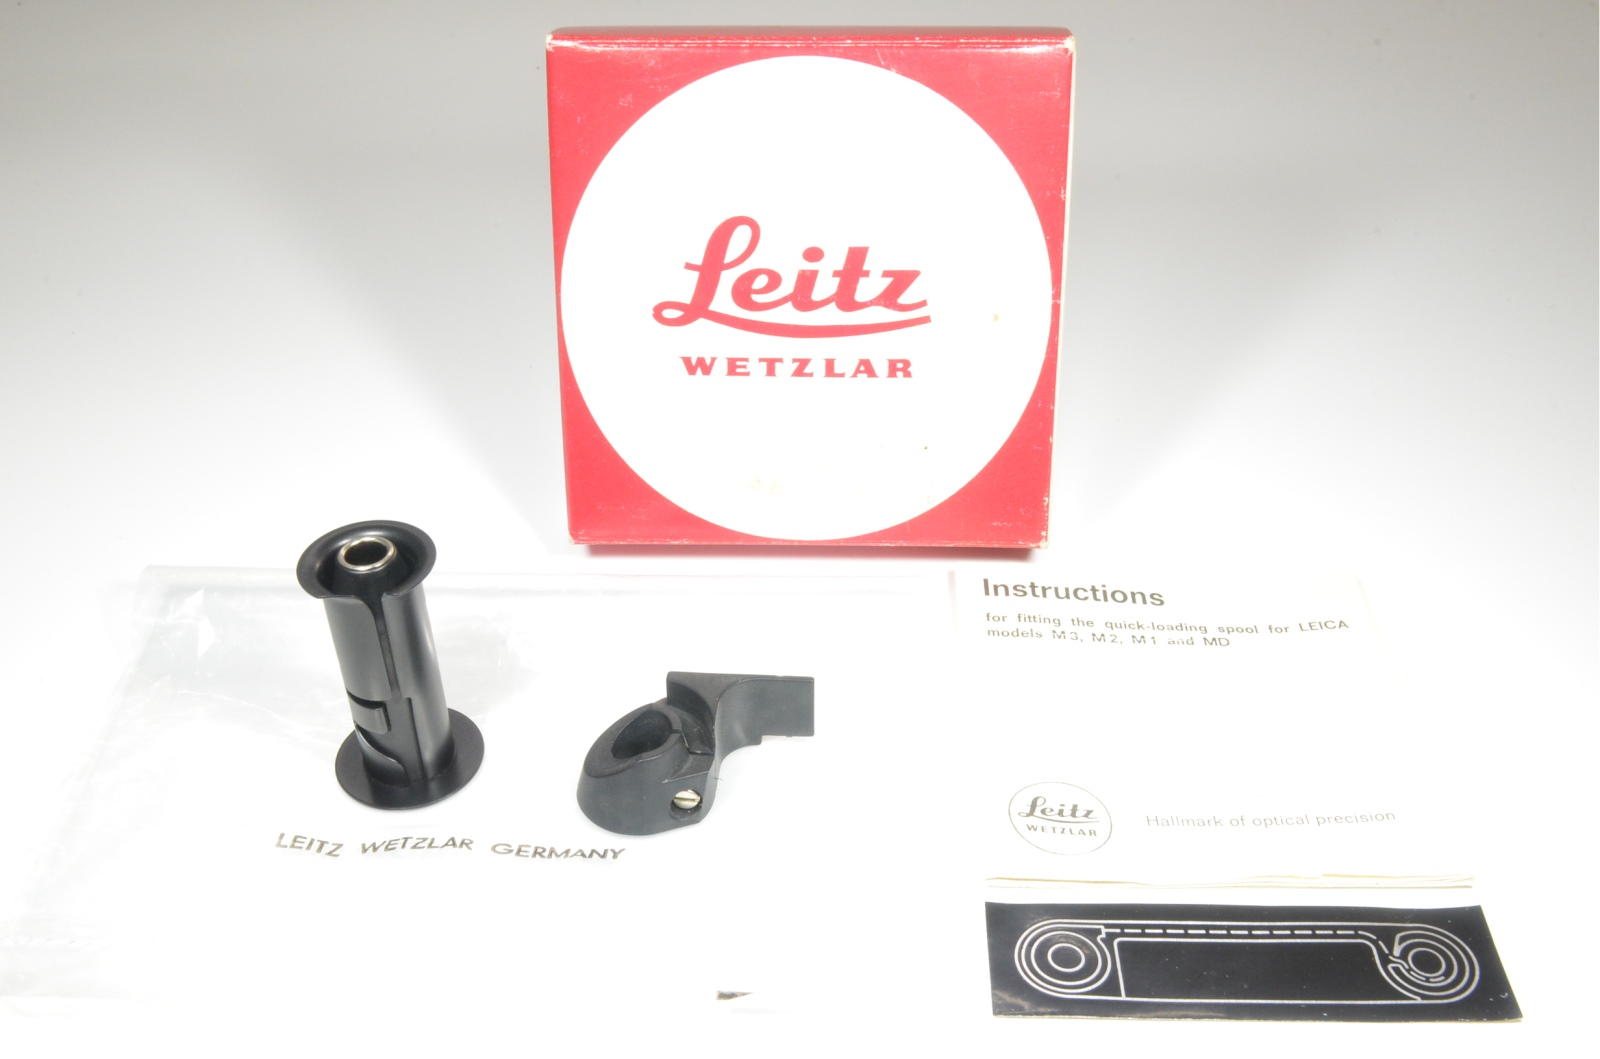 leitz wetzlar rapid quick load spool kit 14260 for leica m1, m2, m3 and md